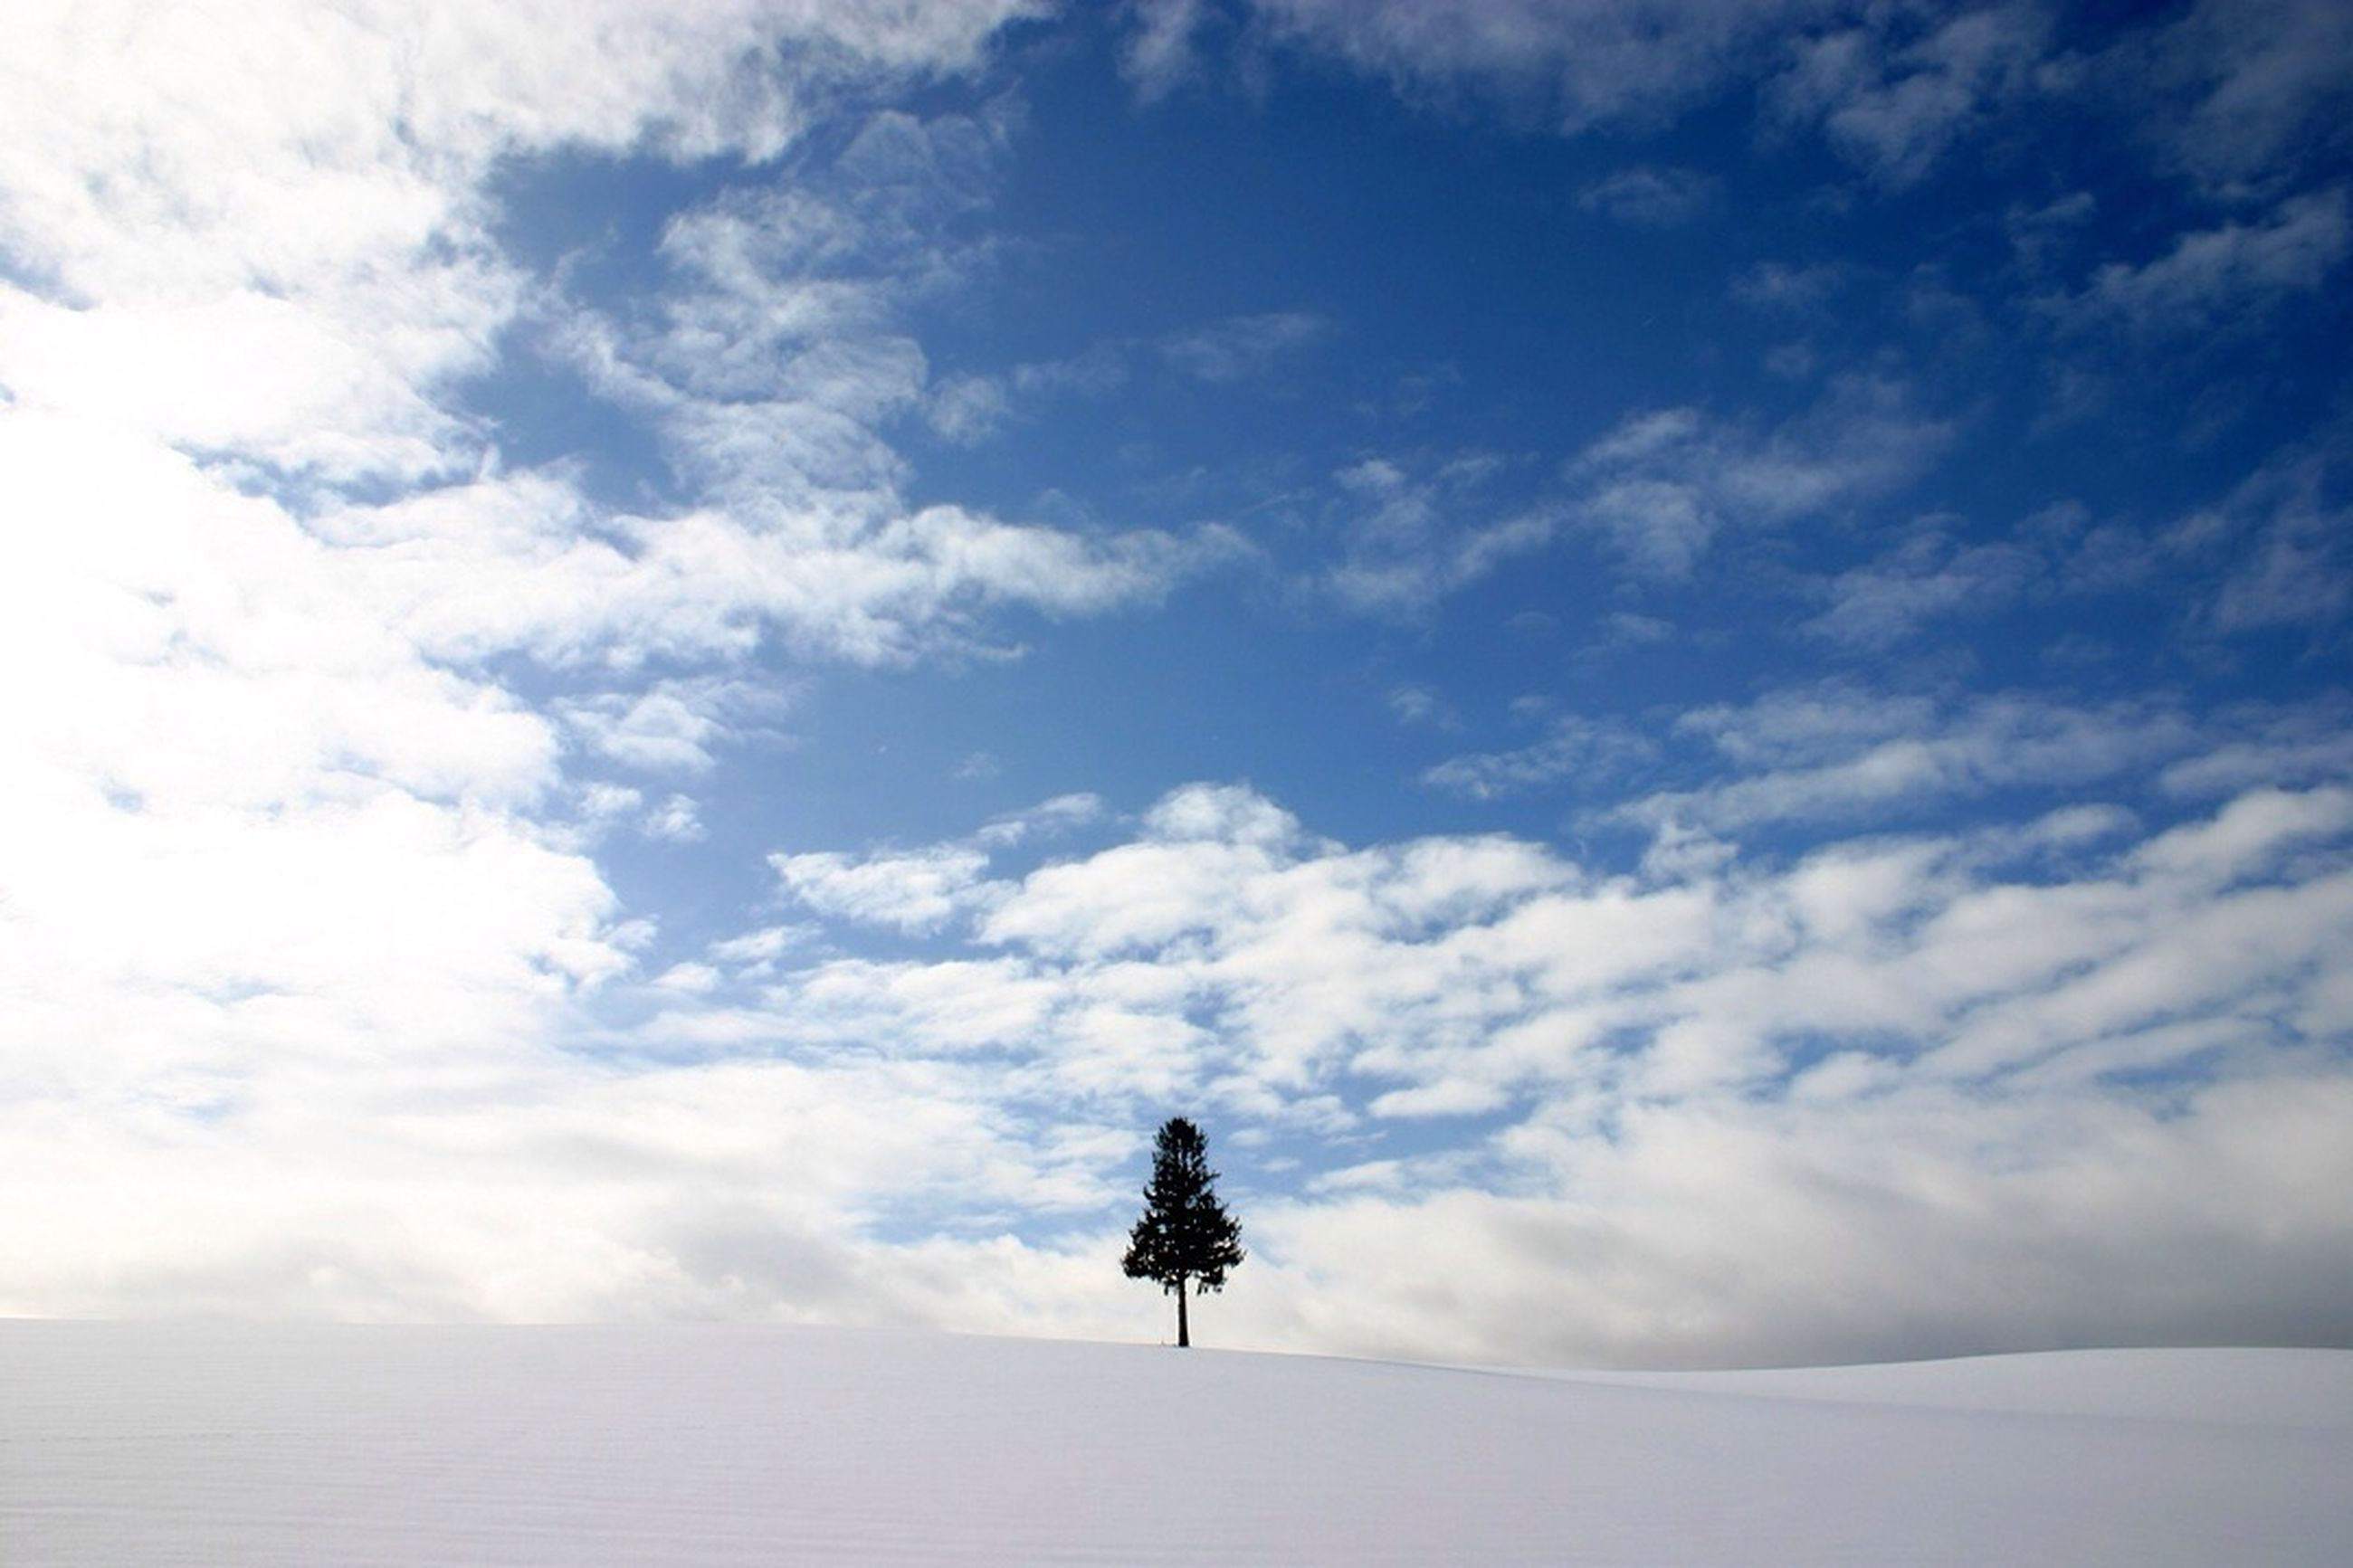 lifestyles, sky, leisure activity, full length, rear view, cloud - sky, men, weather, standing, tranquility, tranquil scene, snow, winter, scenics, cloudy, cold temperature, nature, beauty in nature